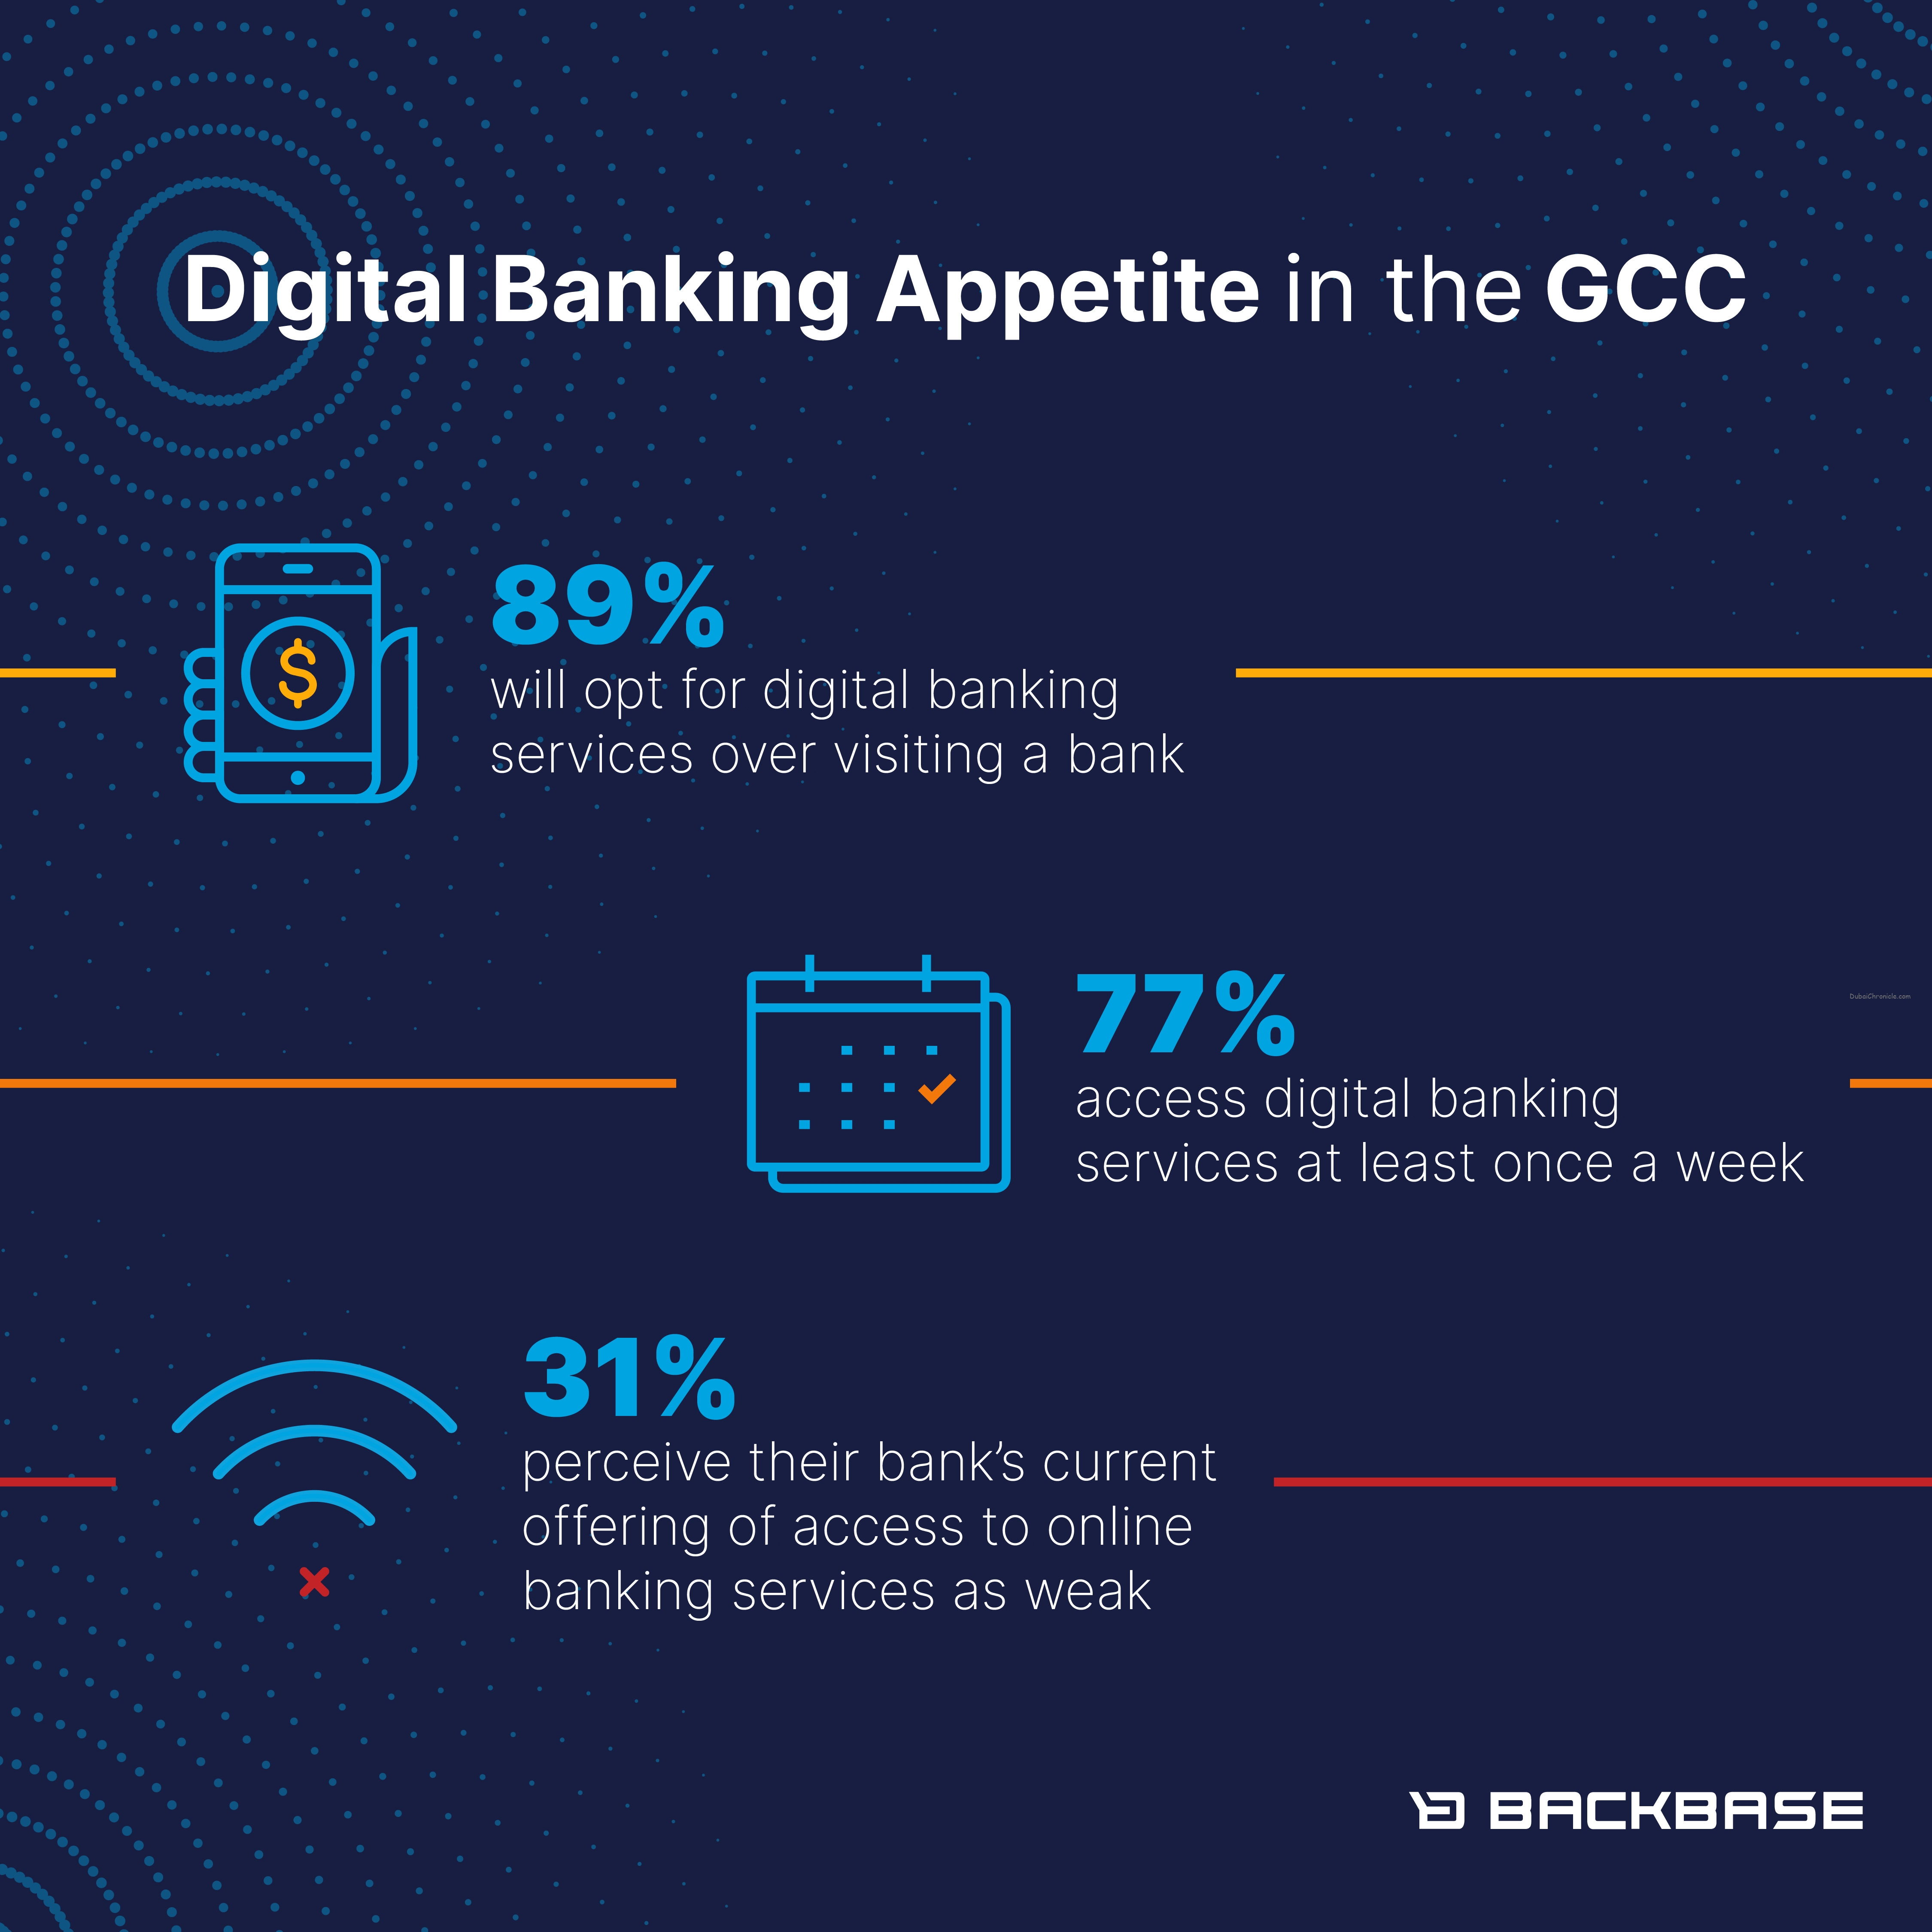 Consumer appetite for digital banking services continues to grow in the countries of the Gulf Cooperation Council (GCC).